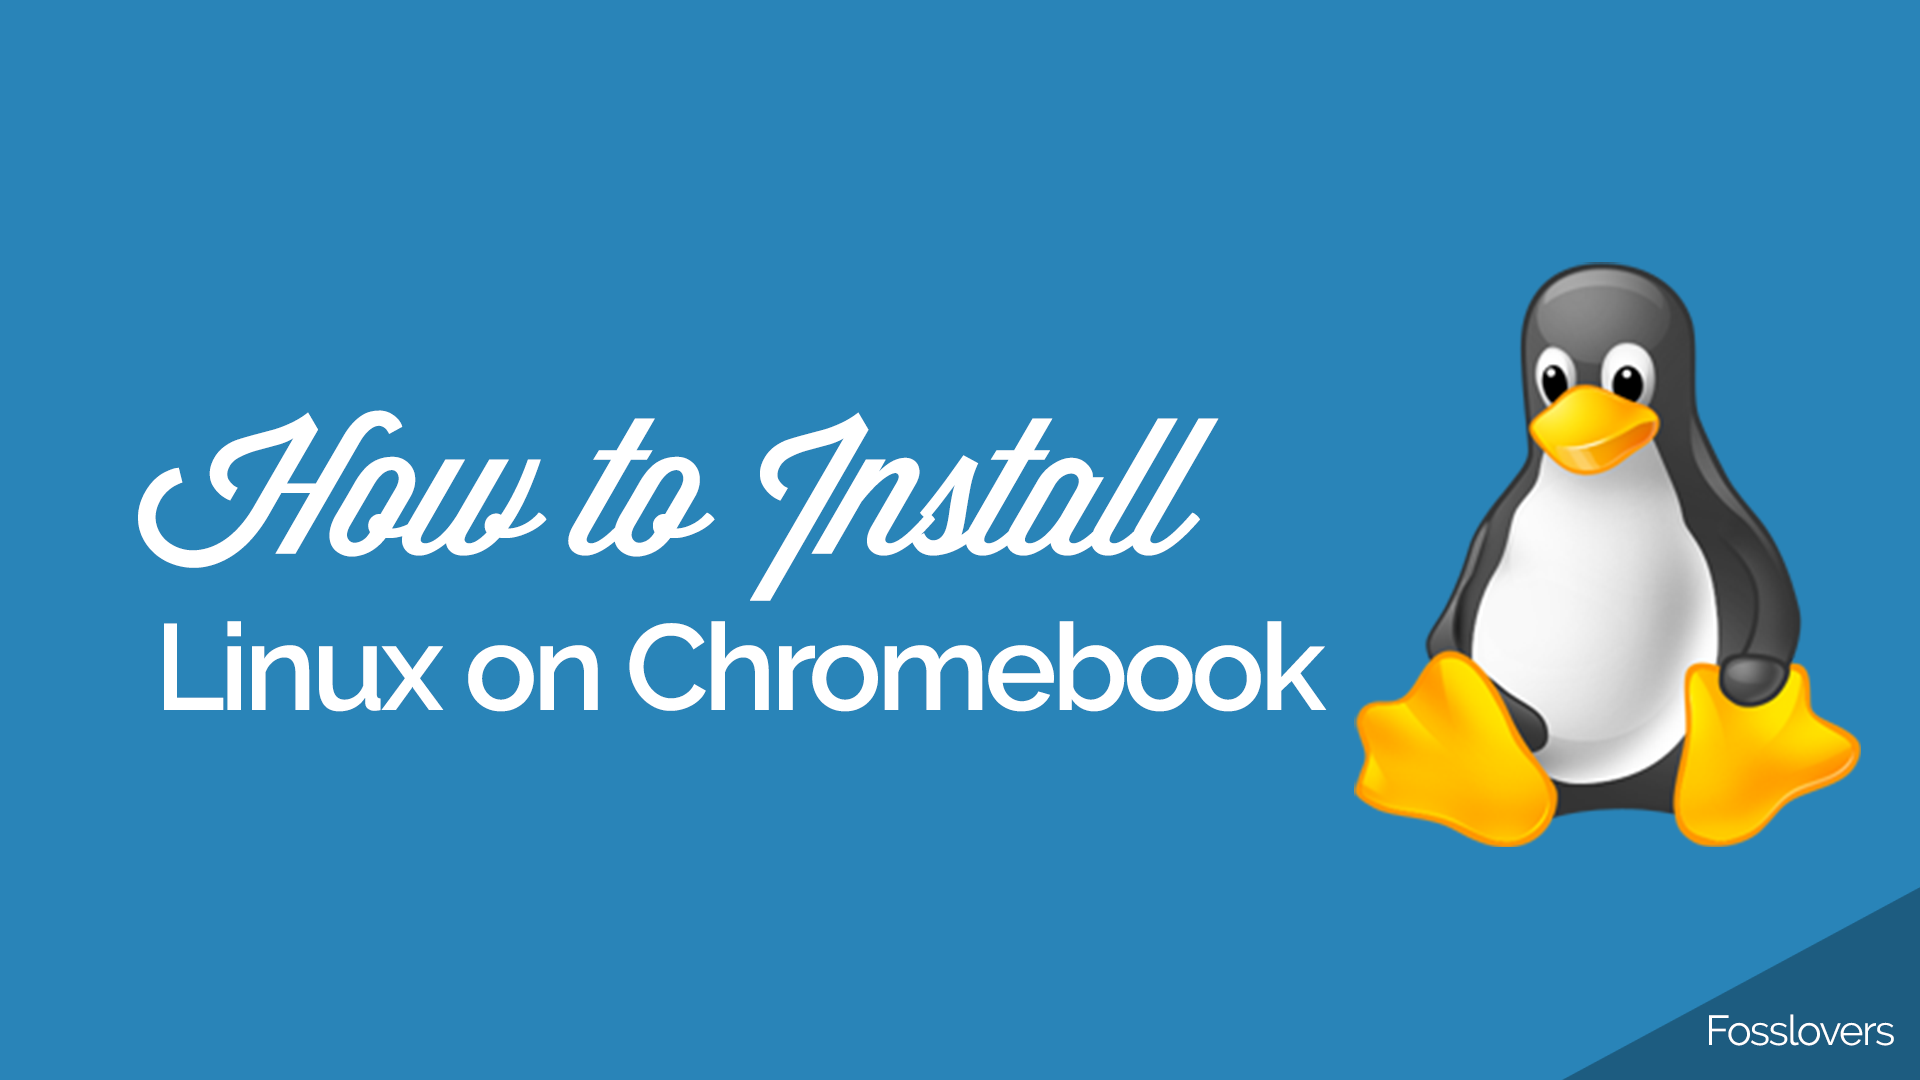 how to install linux on chromebook